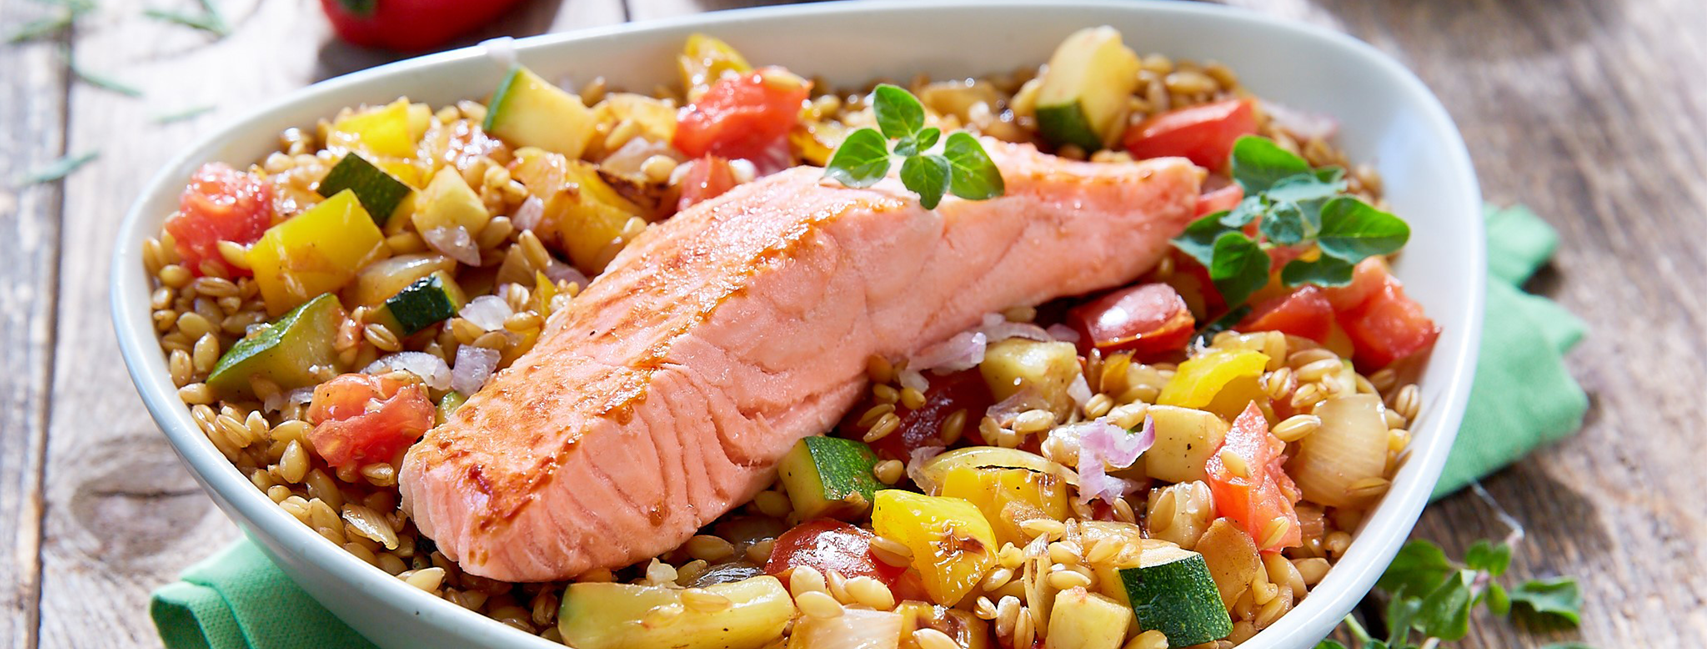 Marinated salmon sautéed with vegetables, sided with spelt